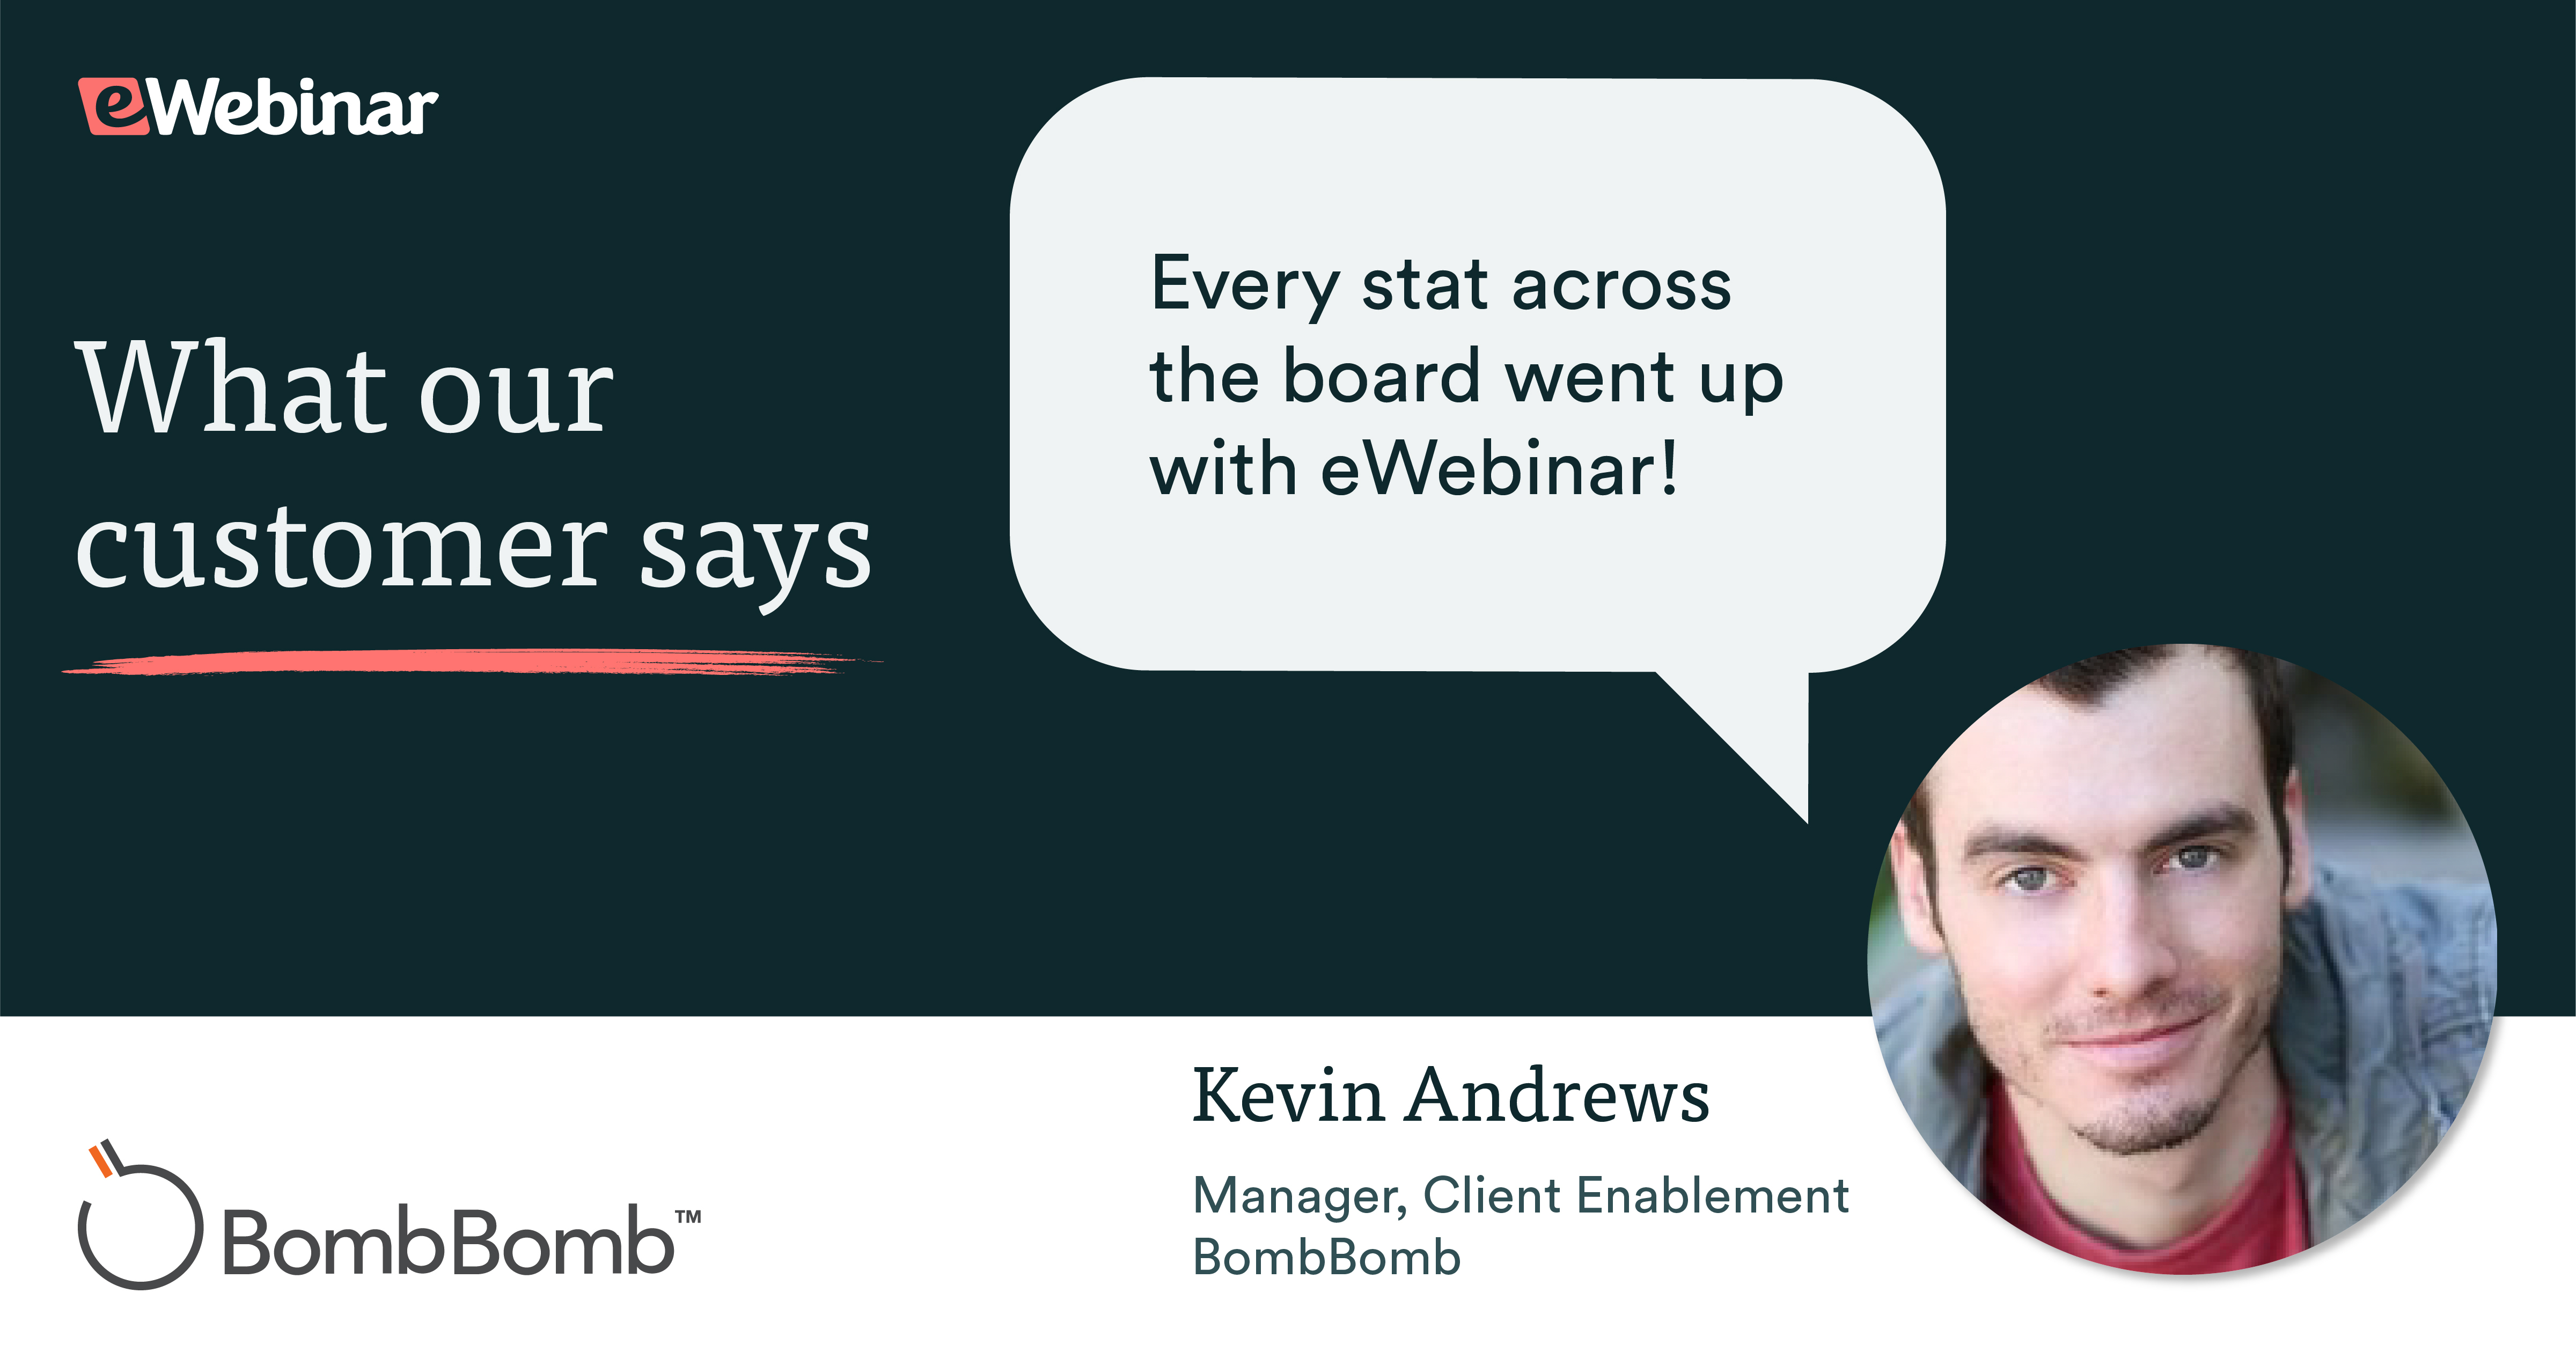 Every stat across the board went up with eWebinar